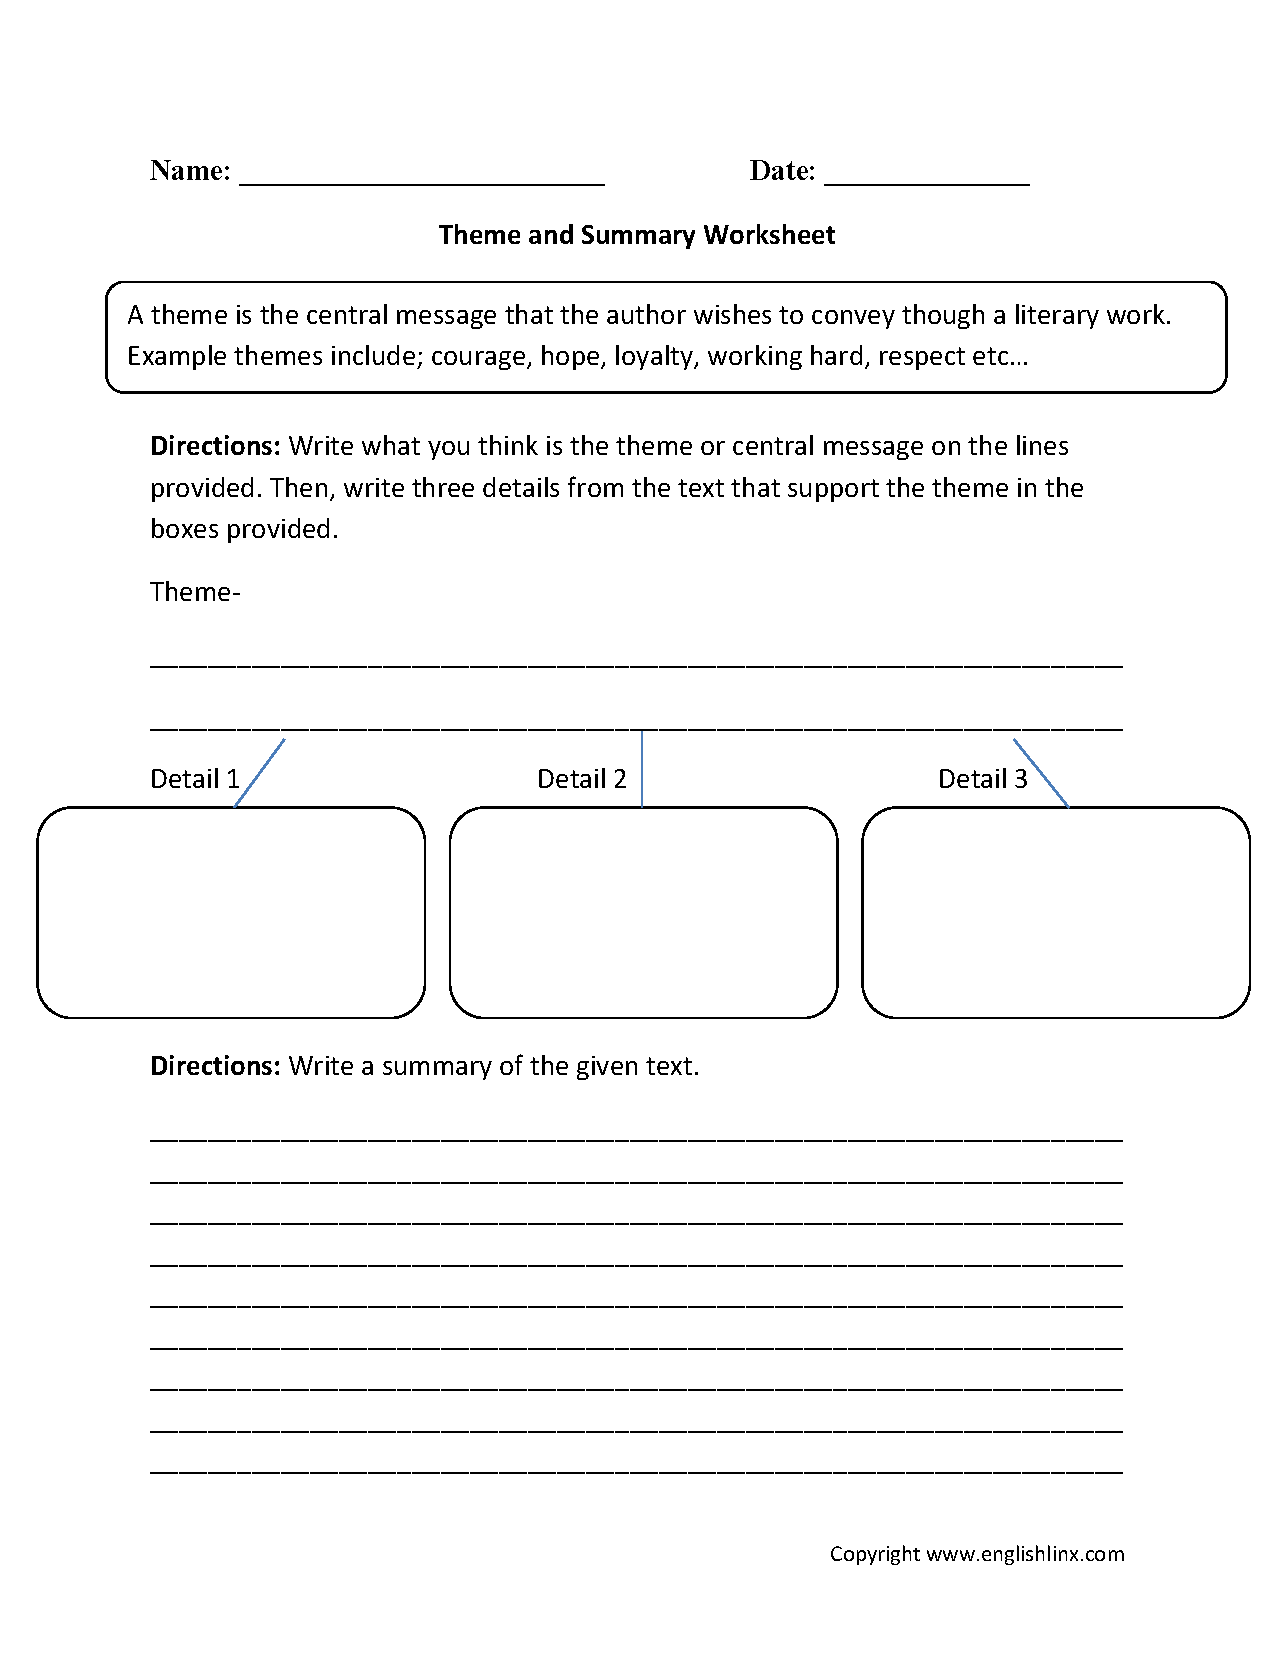 Homework Assignment Sheets For Students Reception